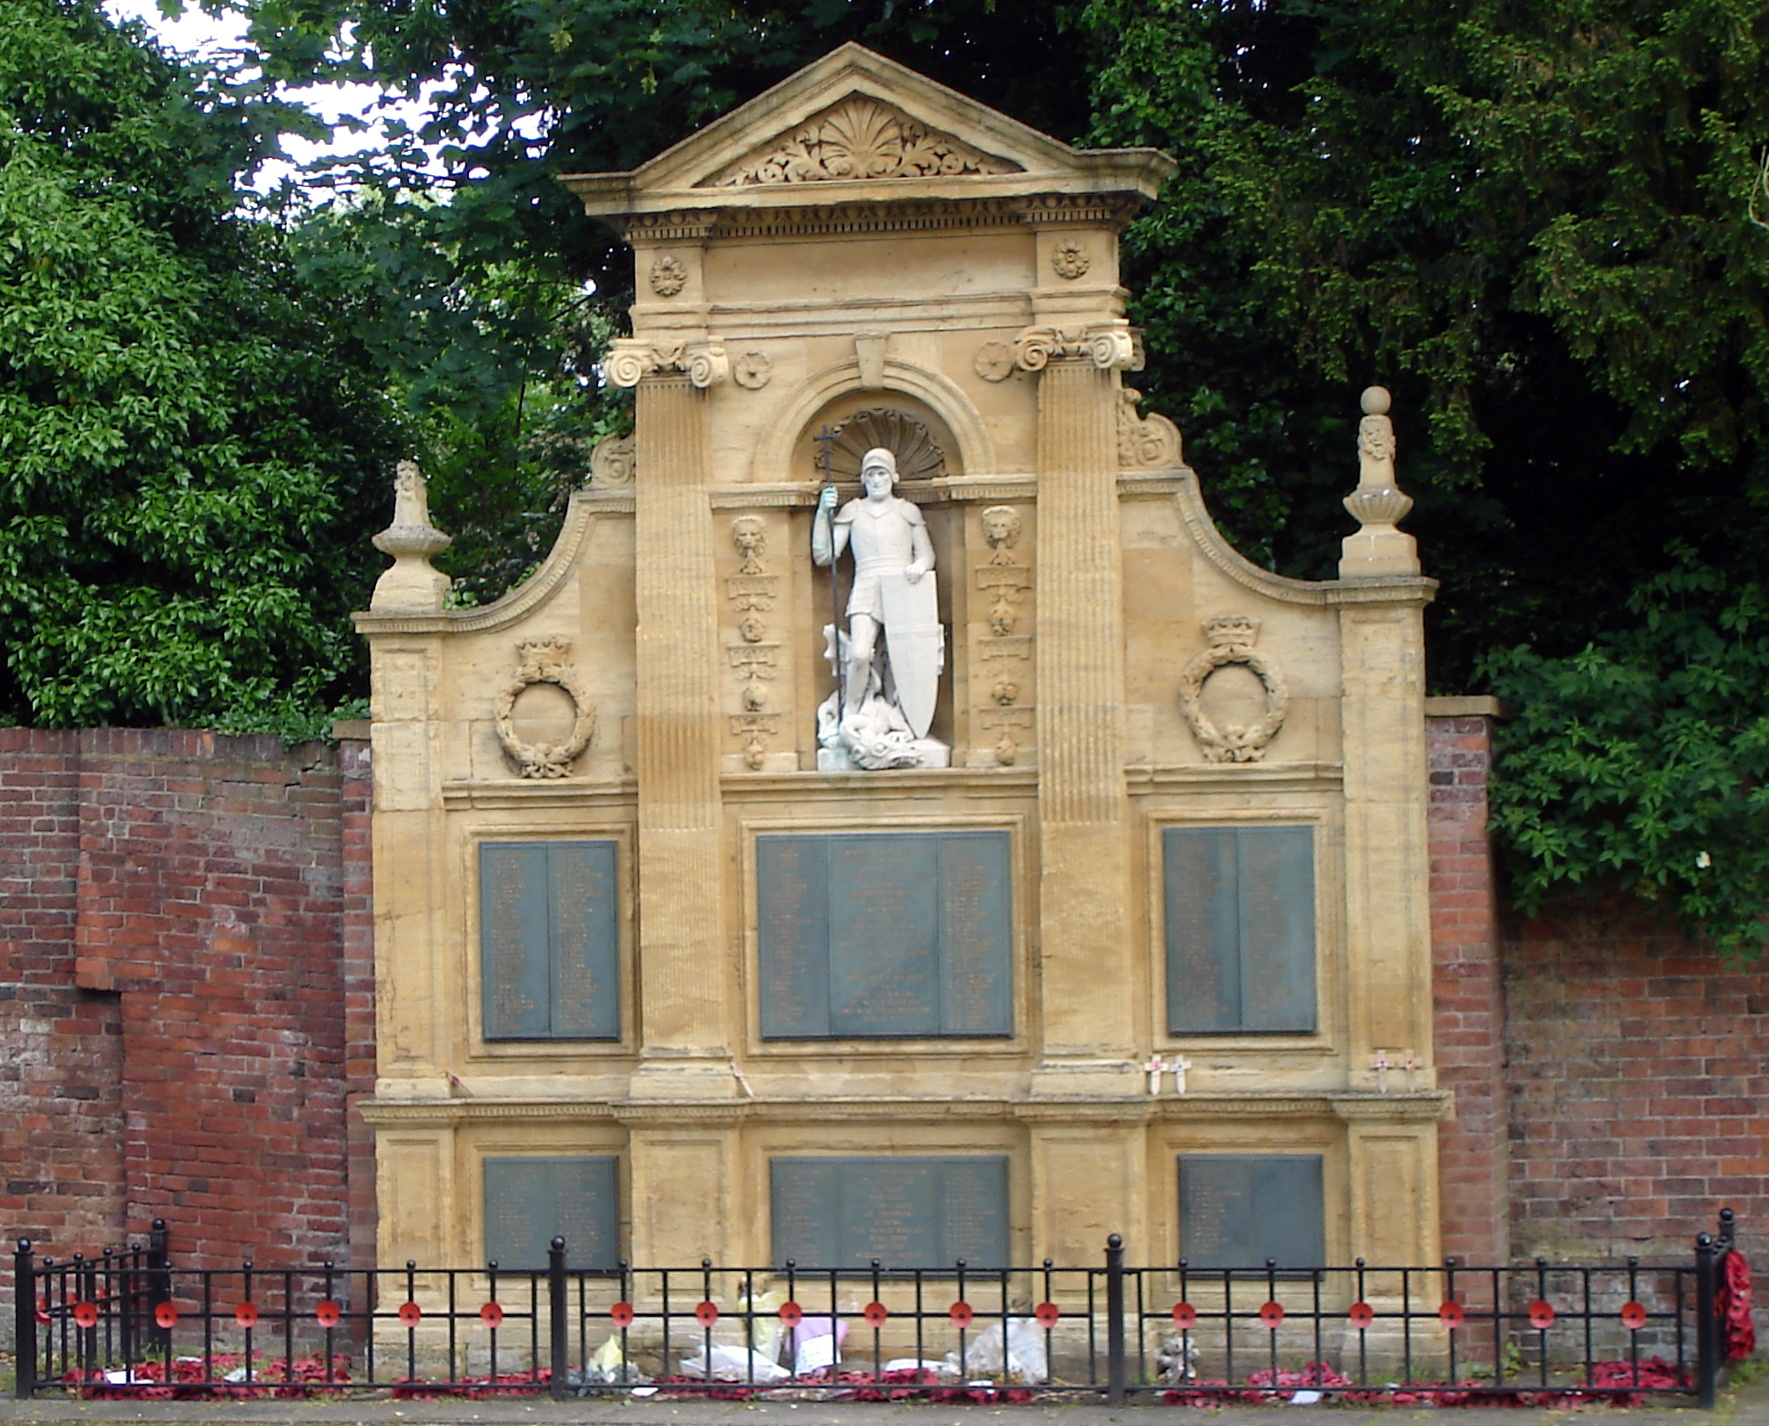 Lichfield Remembrance Garden War Memorial.